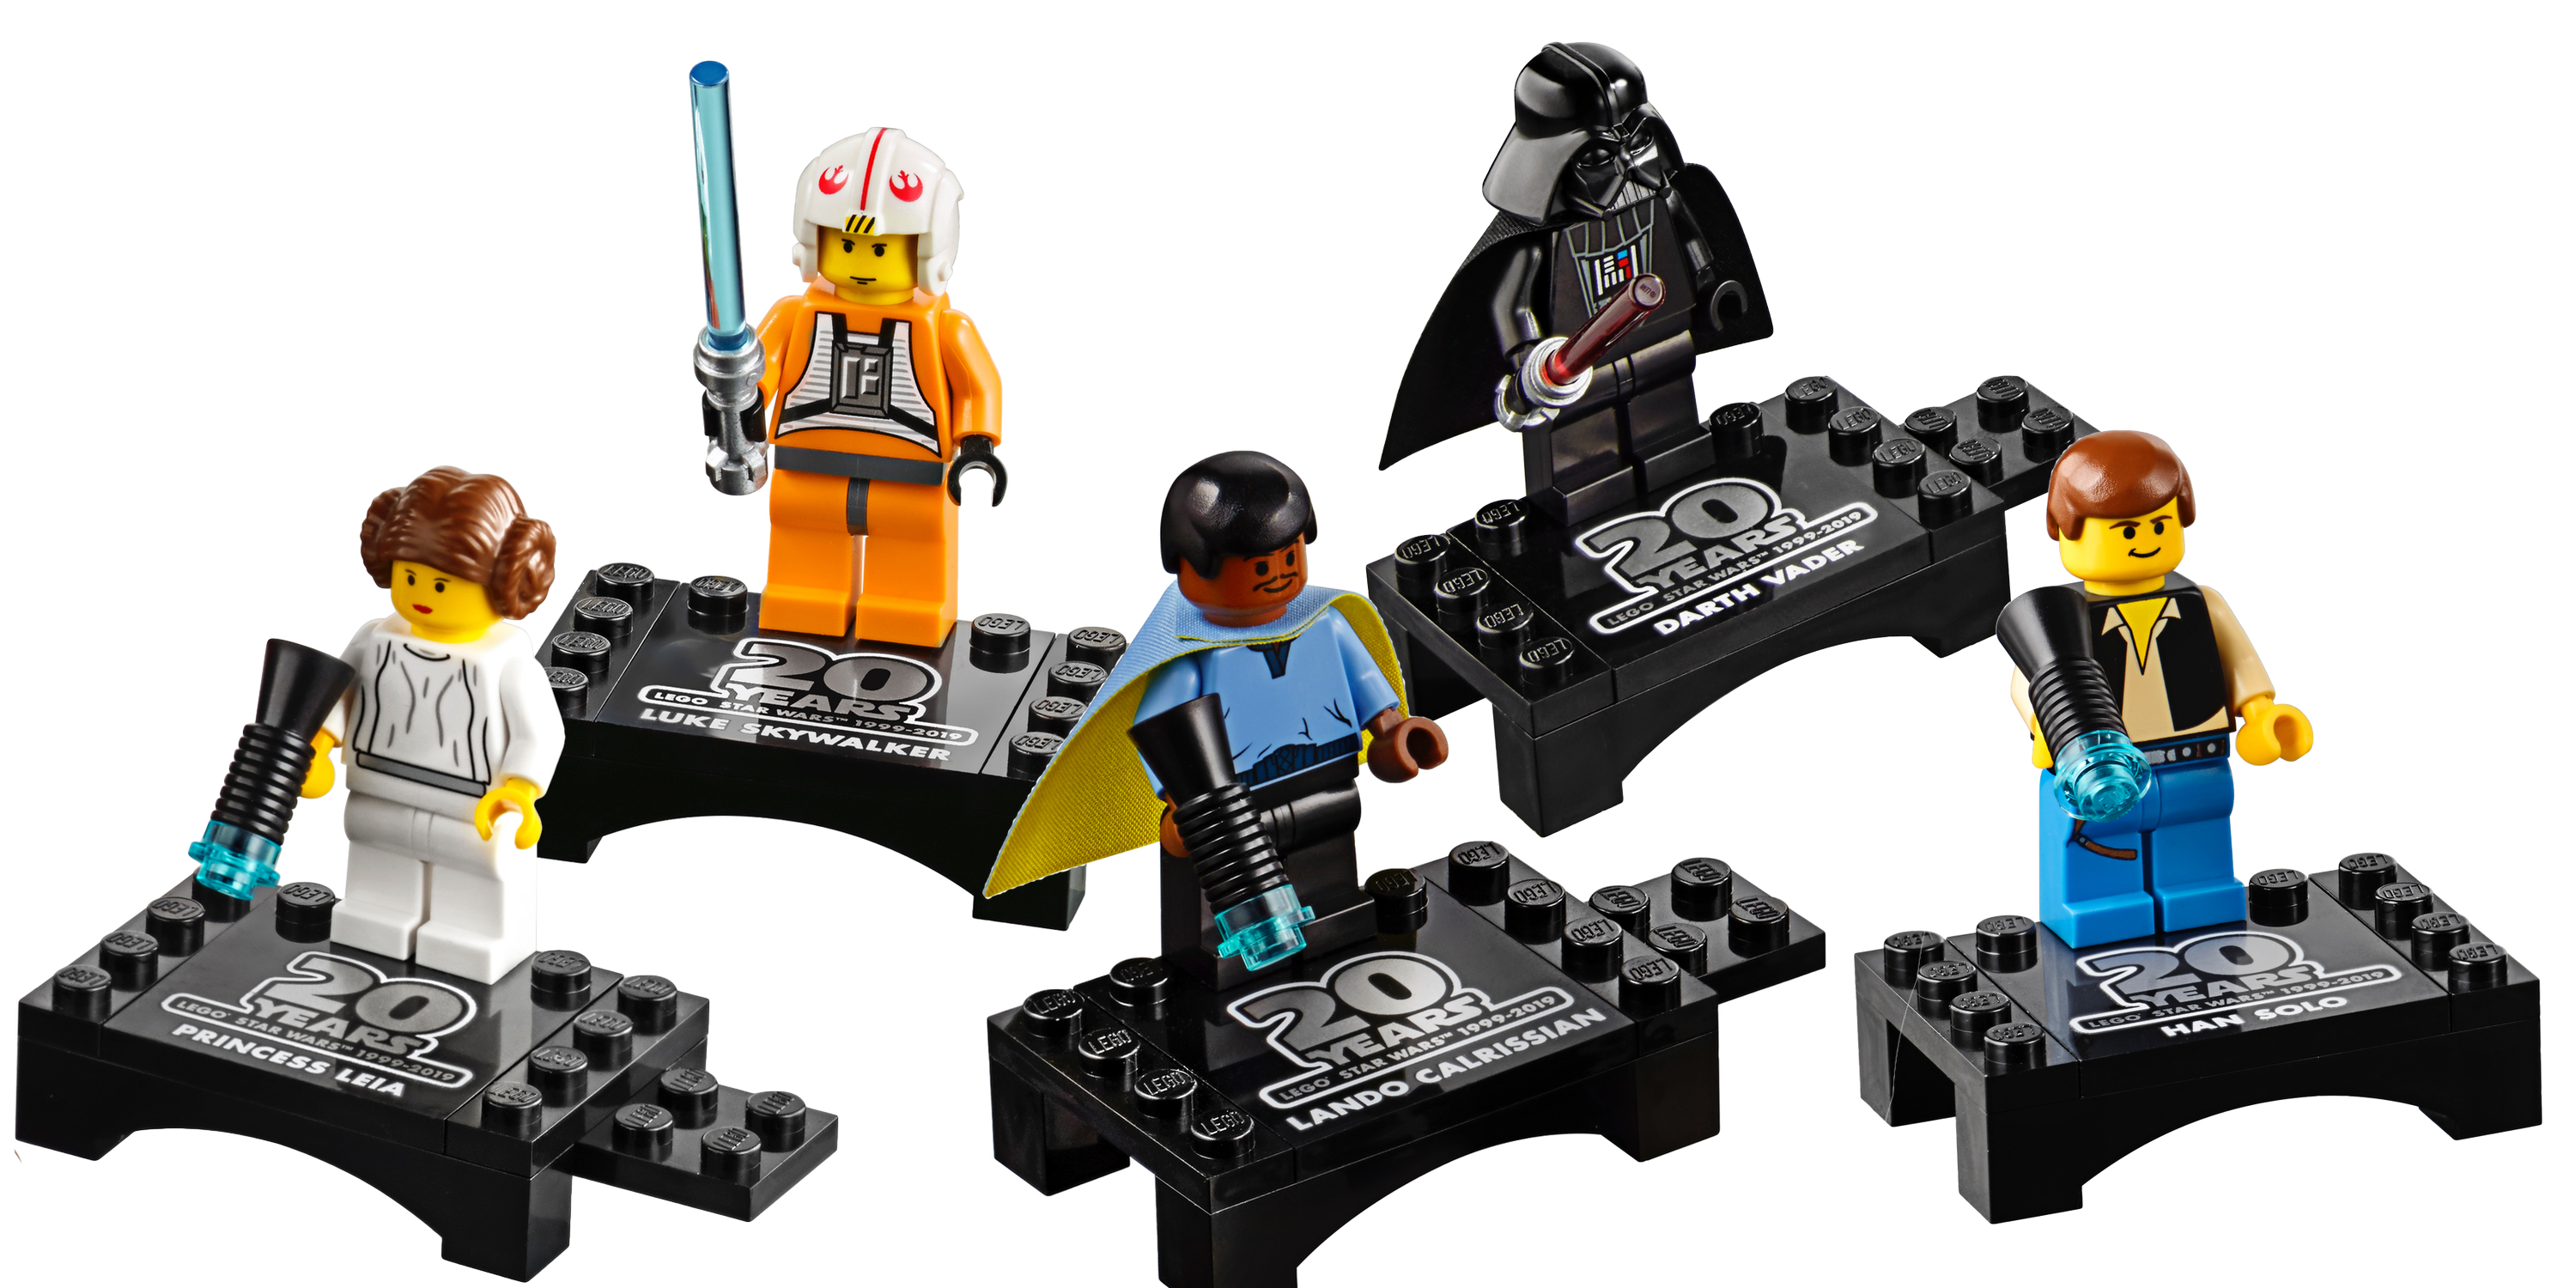 LEGO Star Wars 20th Anniversary Minifigures